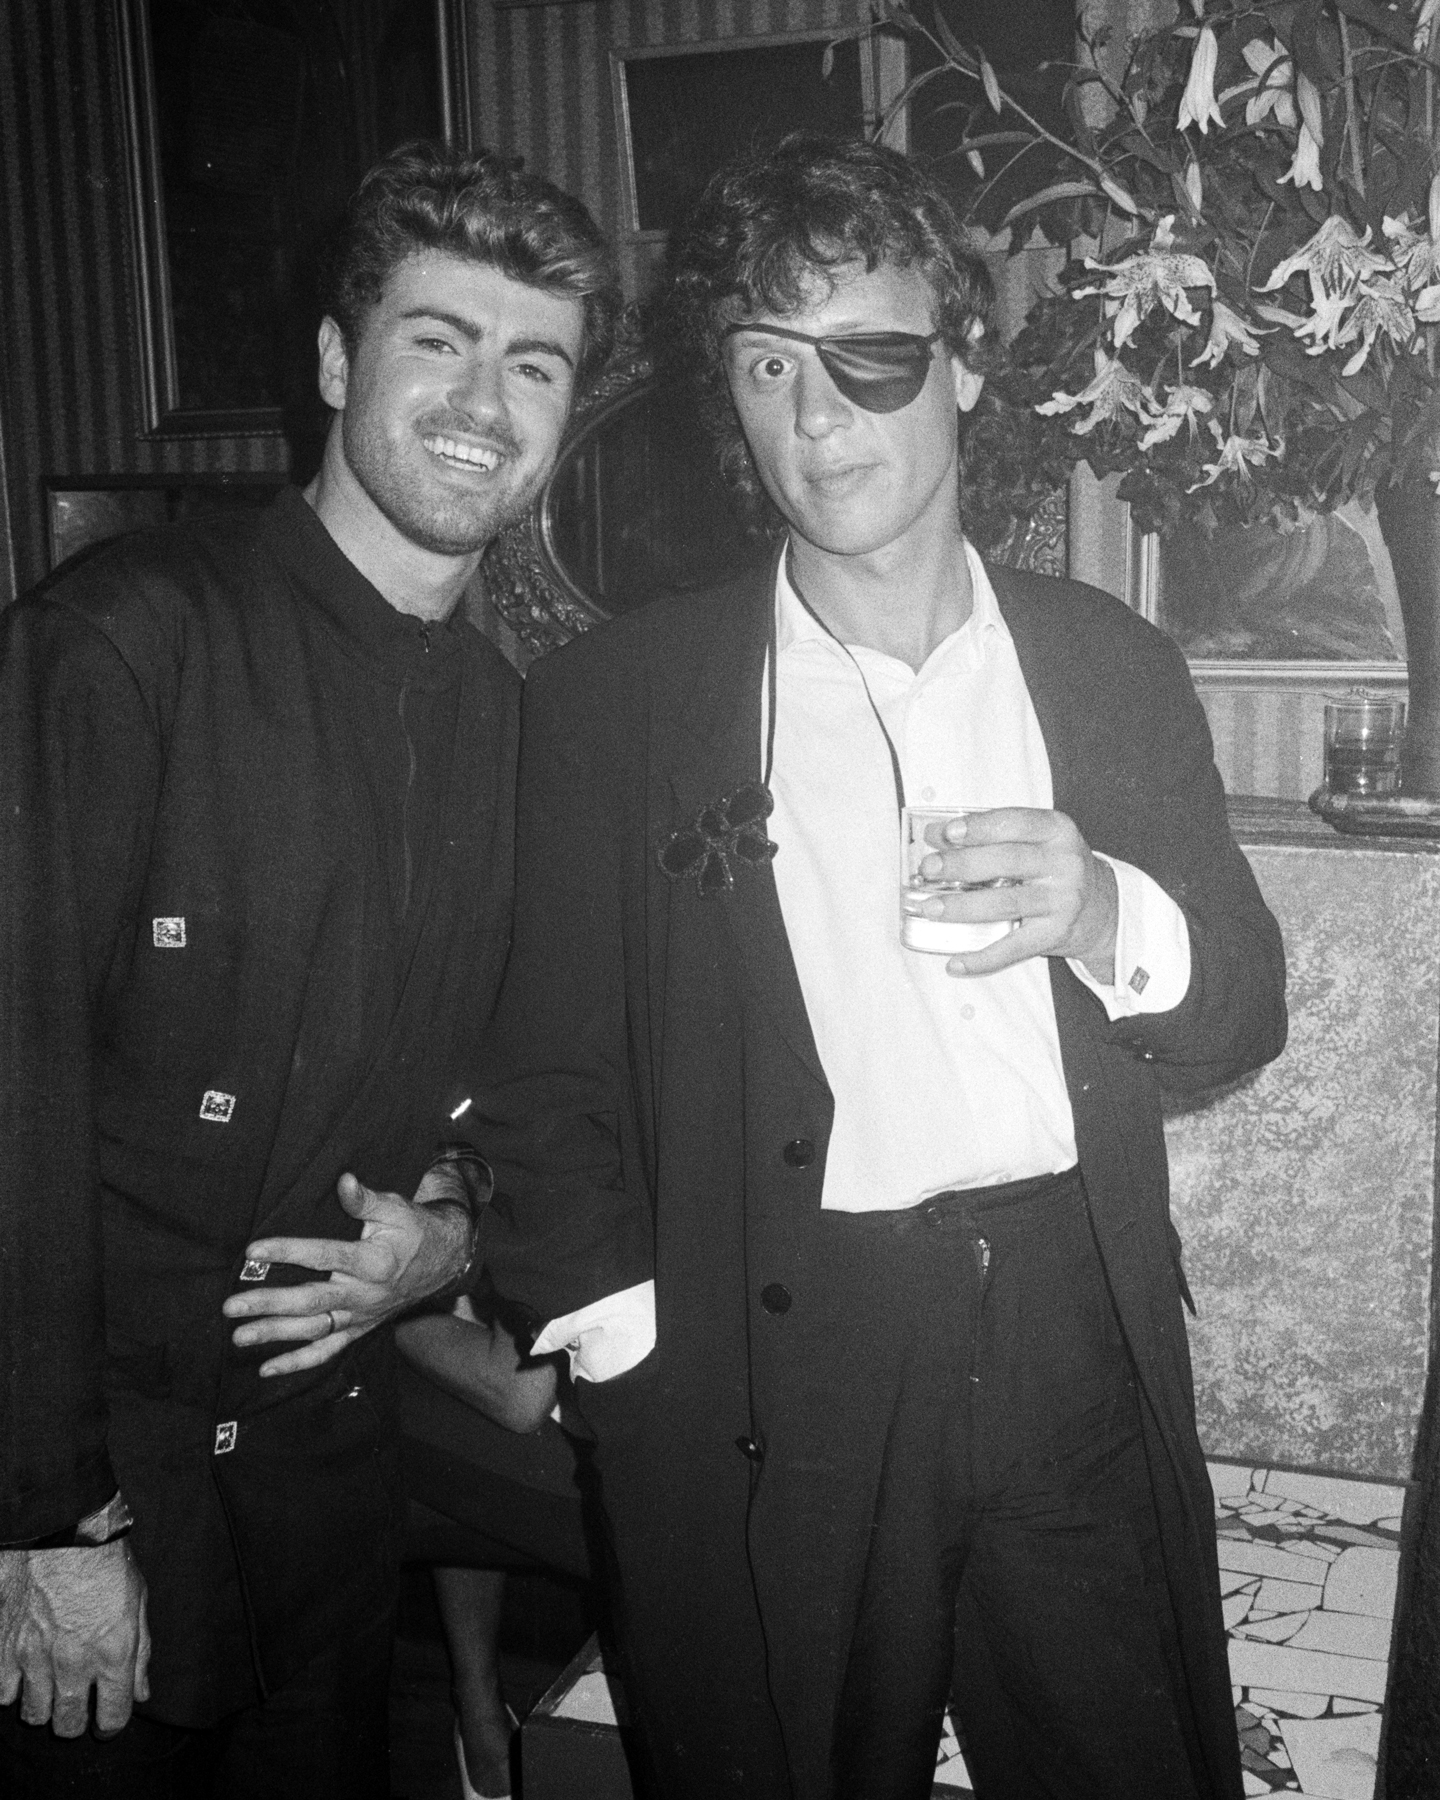 Canadian nightclub owner Peter Gatien (right) with English singer George Michael (1963 - 2016) in New York City, USA, circa 1987. (Photo by Michael Ochs Archives/Getty Images)